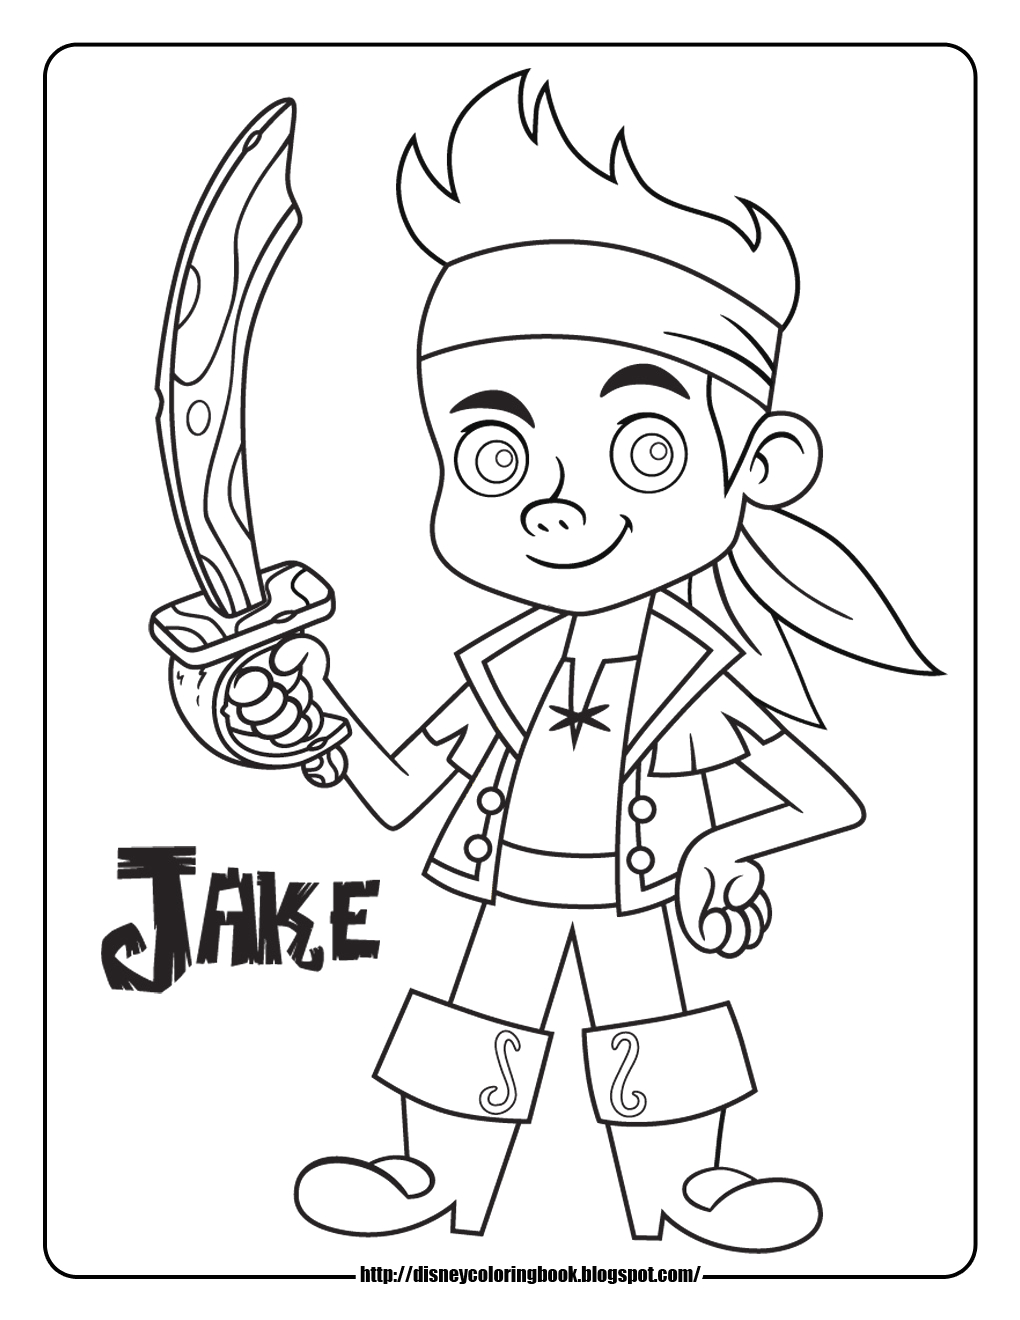 Free Printable Jake and the Neverland Pirates Coloring Pages Jake and the Neverland Pirates 1 Free Disney Coloring Sheets